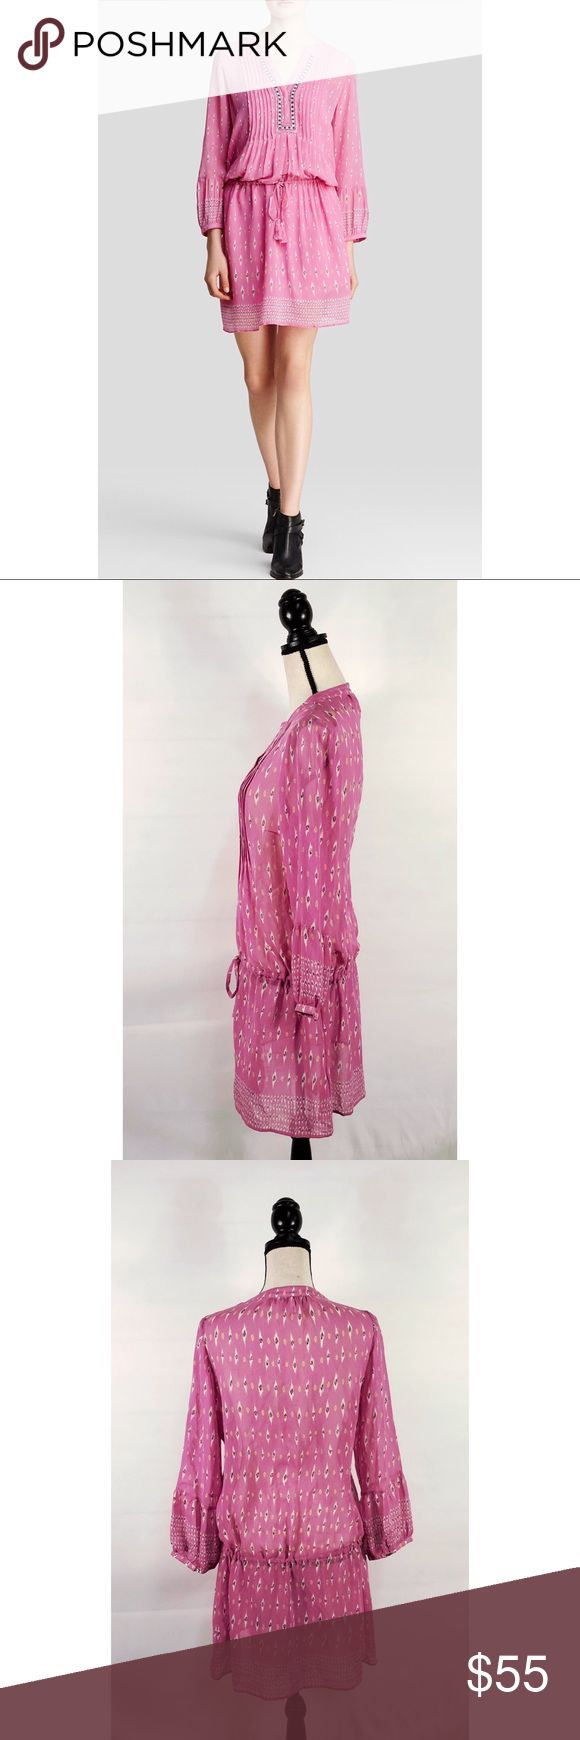 """Joie Silk Dress Boho Suerte Palm Ikat Womens Sz M Pink Sheer Tie Waist Festival  A small-scale ikat print streaks over a perfectly pink silk dress styled with tassel ties nipping in the waist and sharp pleats flanking the split neckline. Full blouson sleeves and a drapey skirt finish the effortlessly sophisticated design.  **Removable silk slip not included.** Length: 37 1/4"""" (size Medium).  B-1 Joie Dresses Mini"""